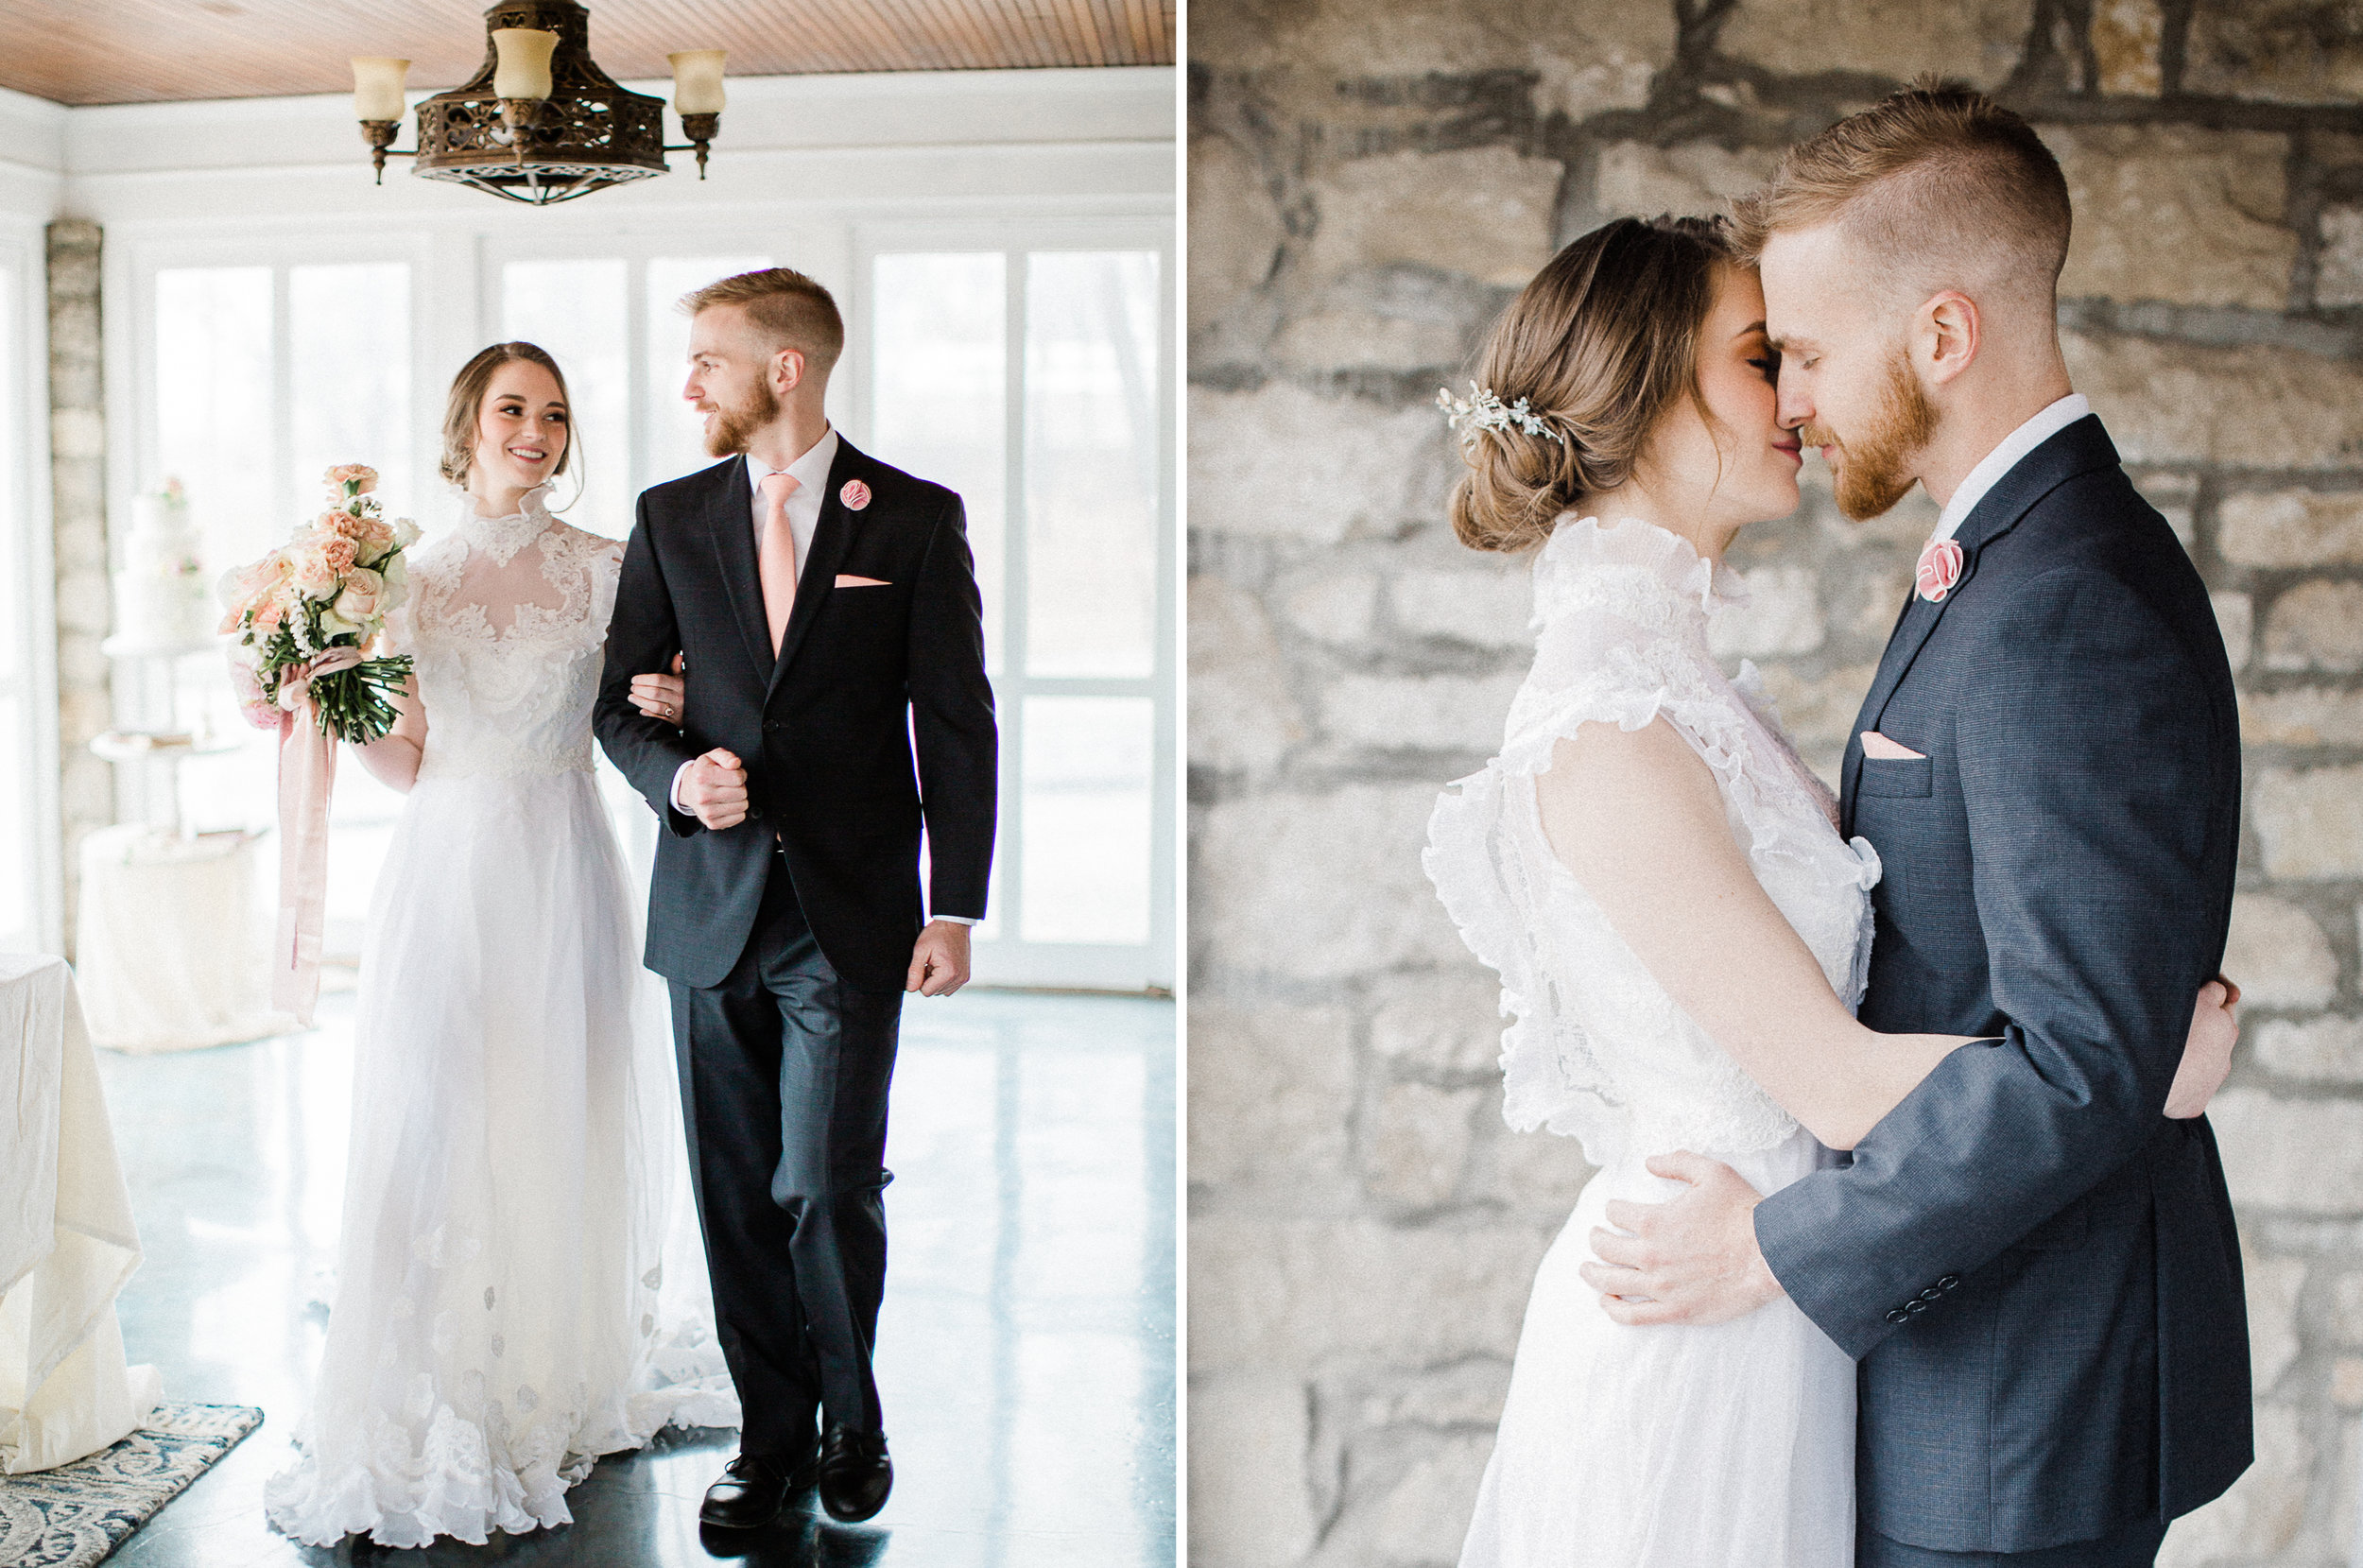 dorothy_louise_photography_old_stone_house_st._charles_bridal_inspiration8.jpg